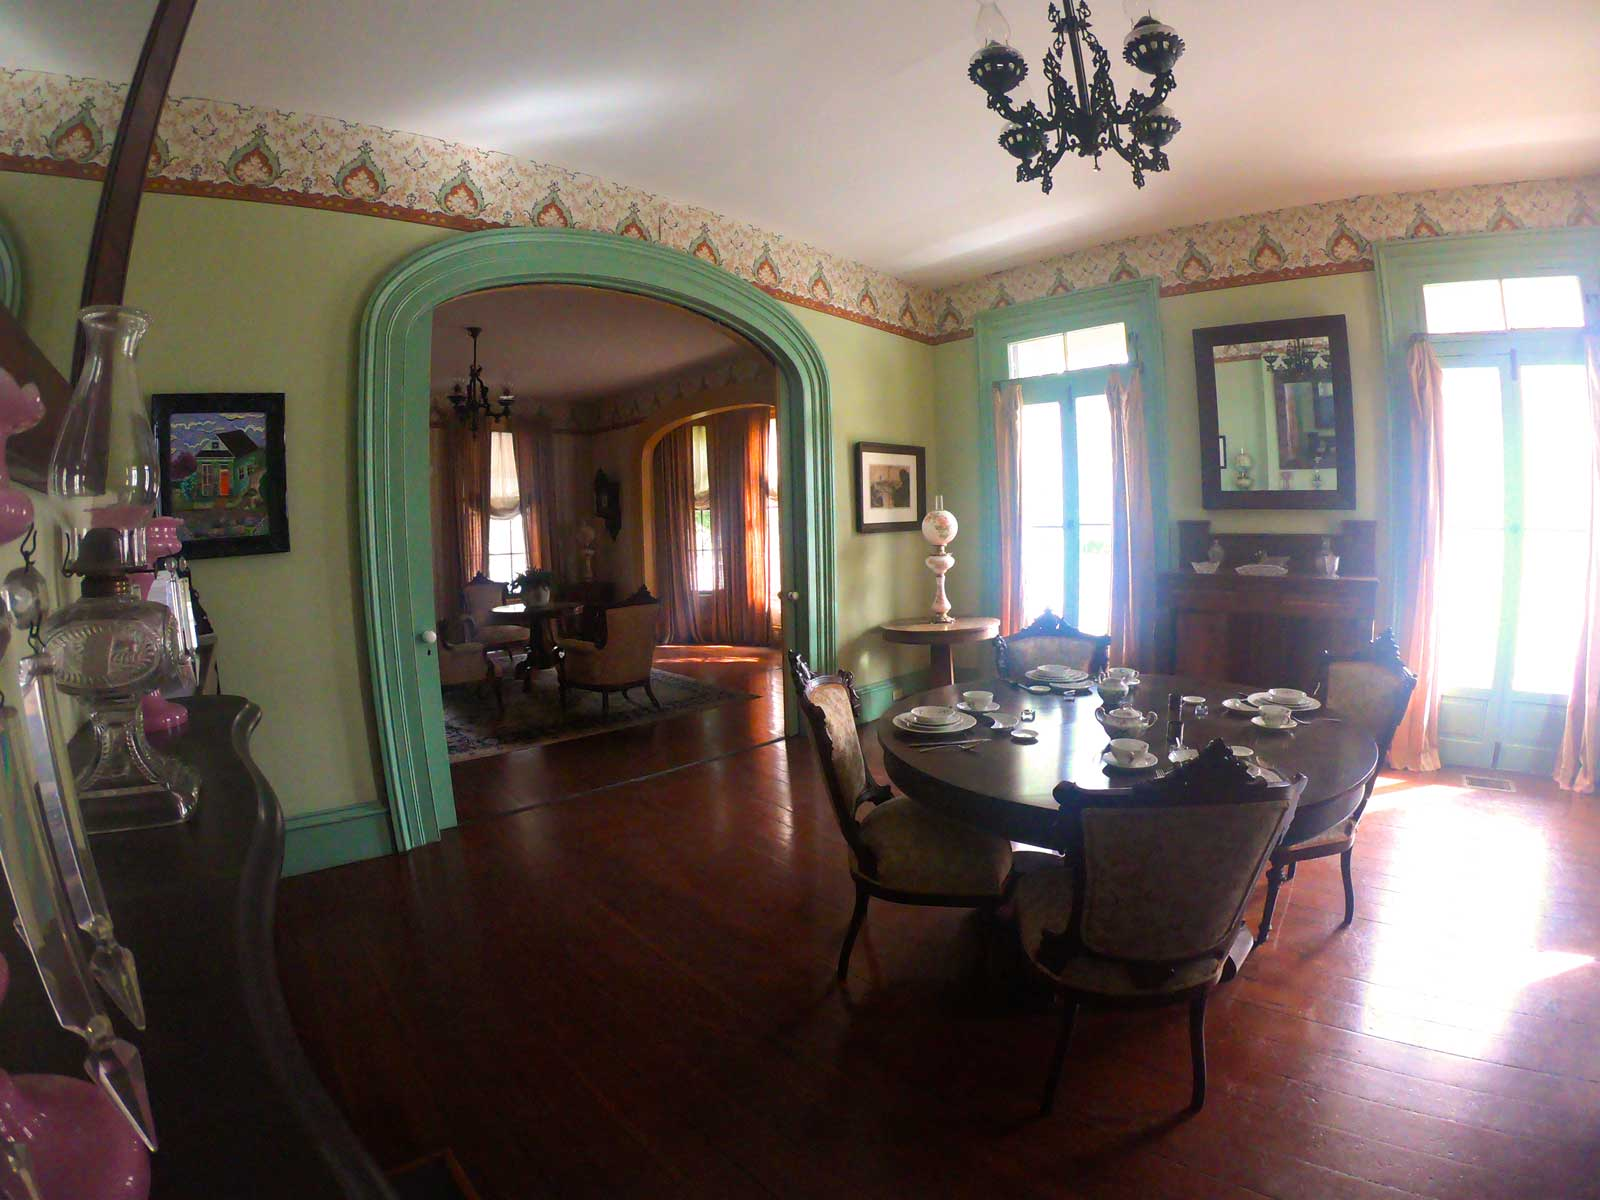 Interior view of dining room in the Dorr House in Historic Pensacola Village, Florida